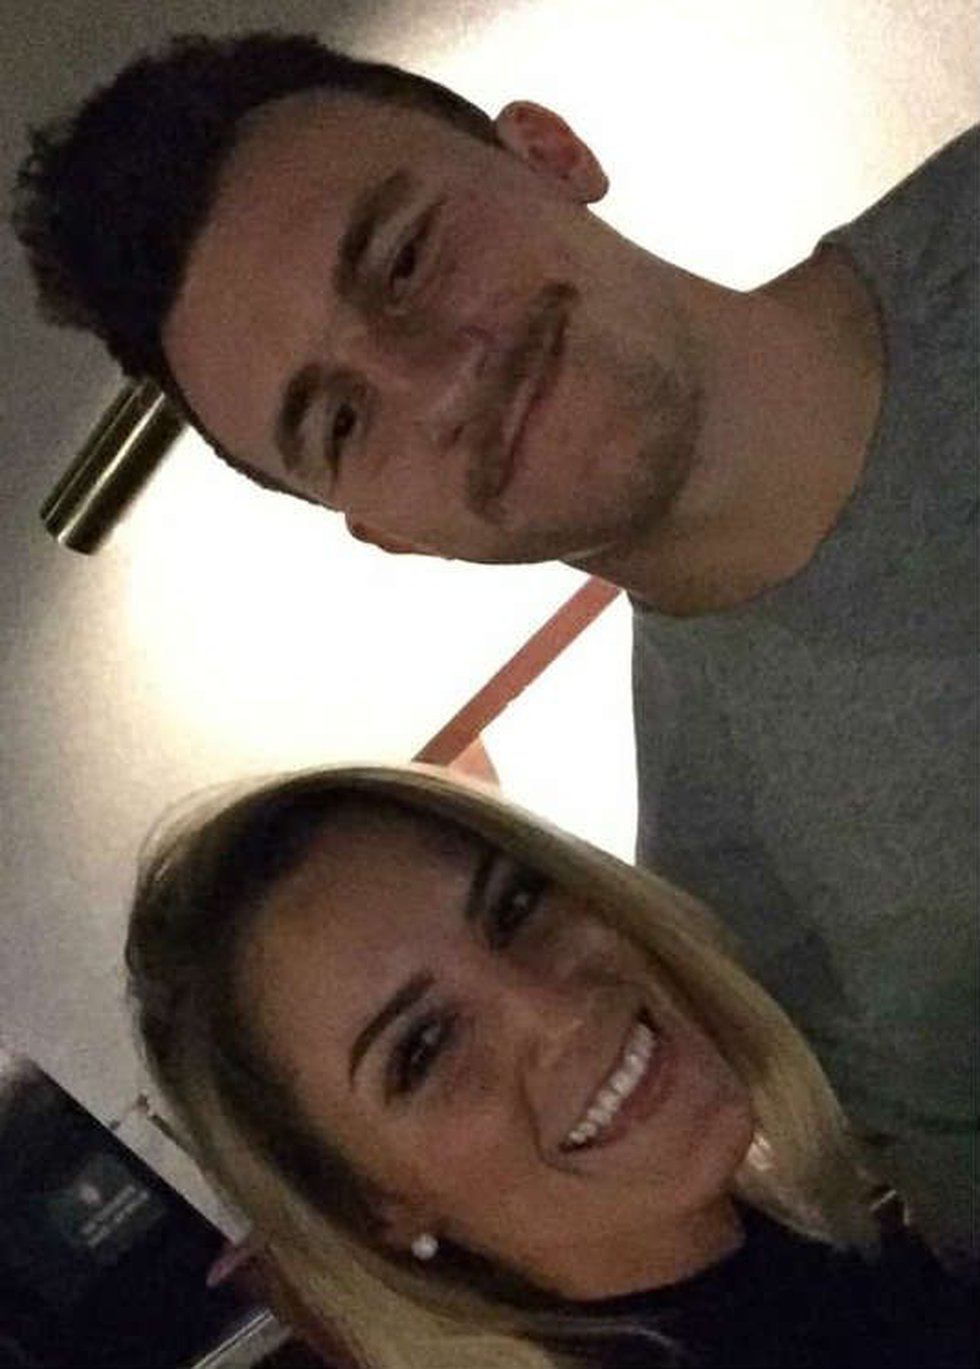 Ashley and Johnny Manziel at Dave & Buster's. (Source: twitter)